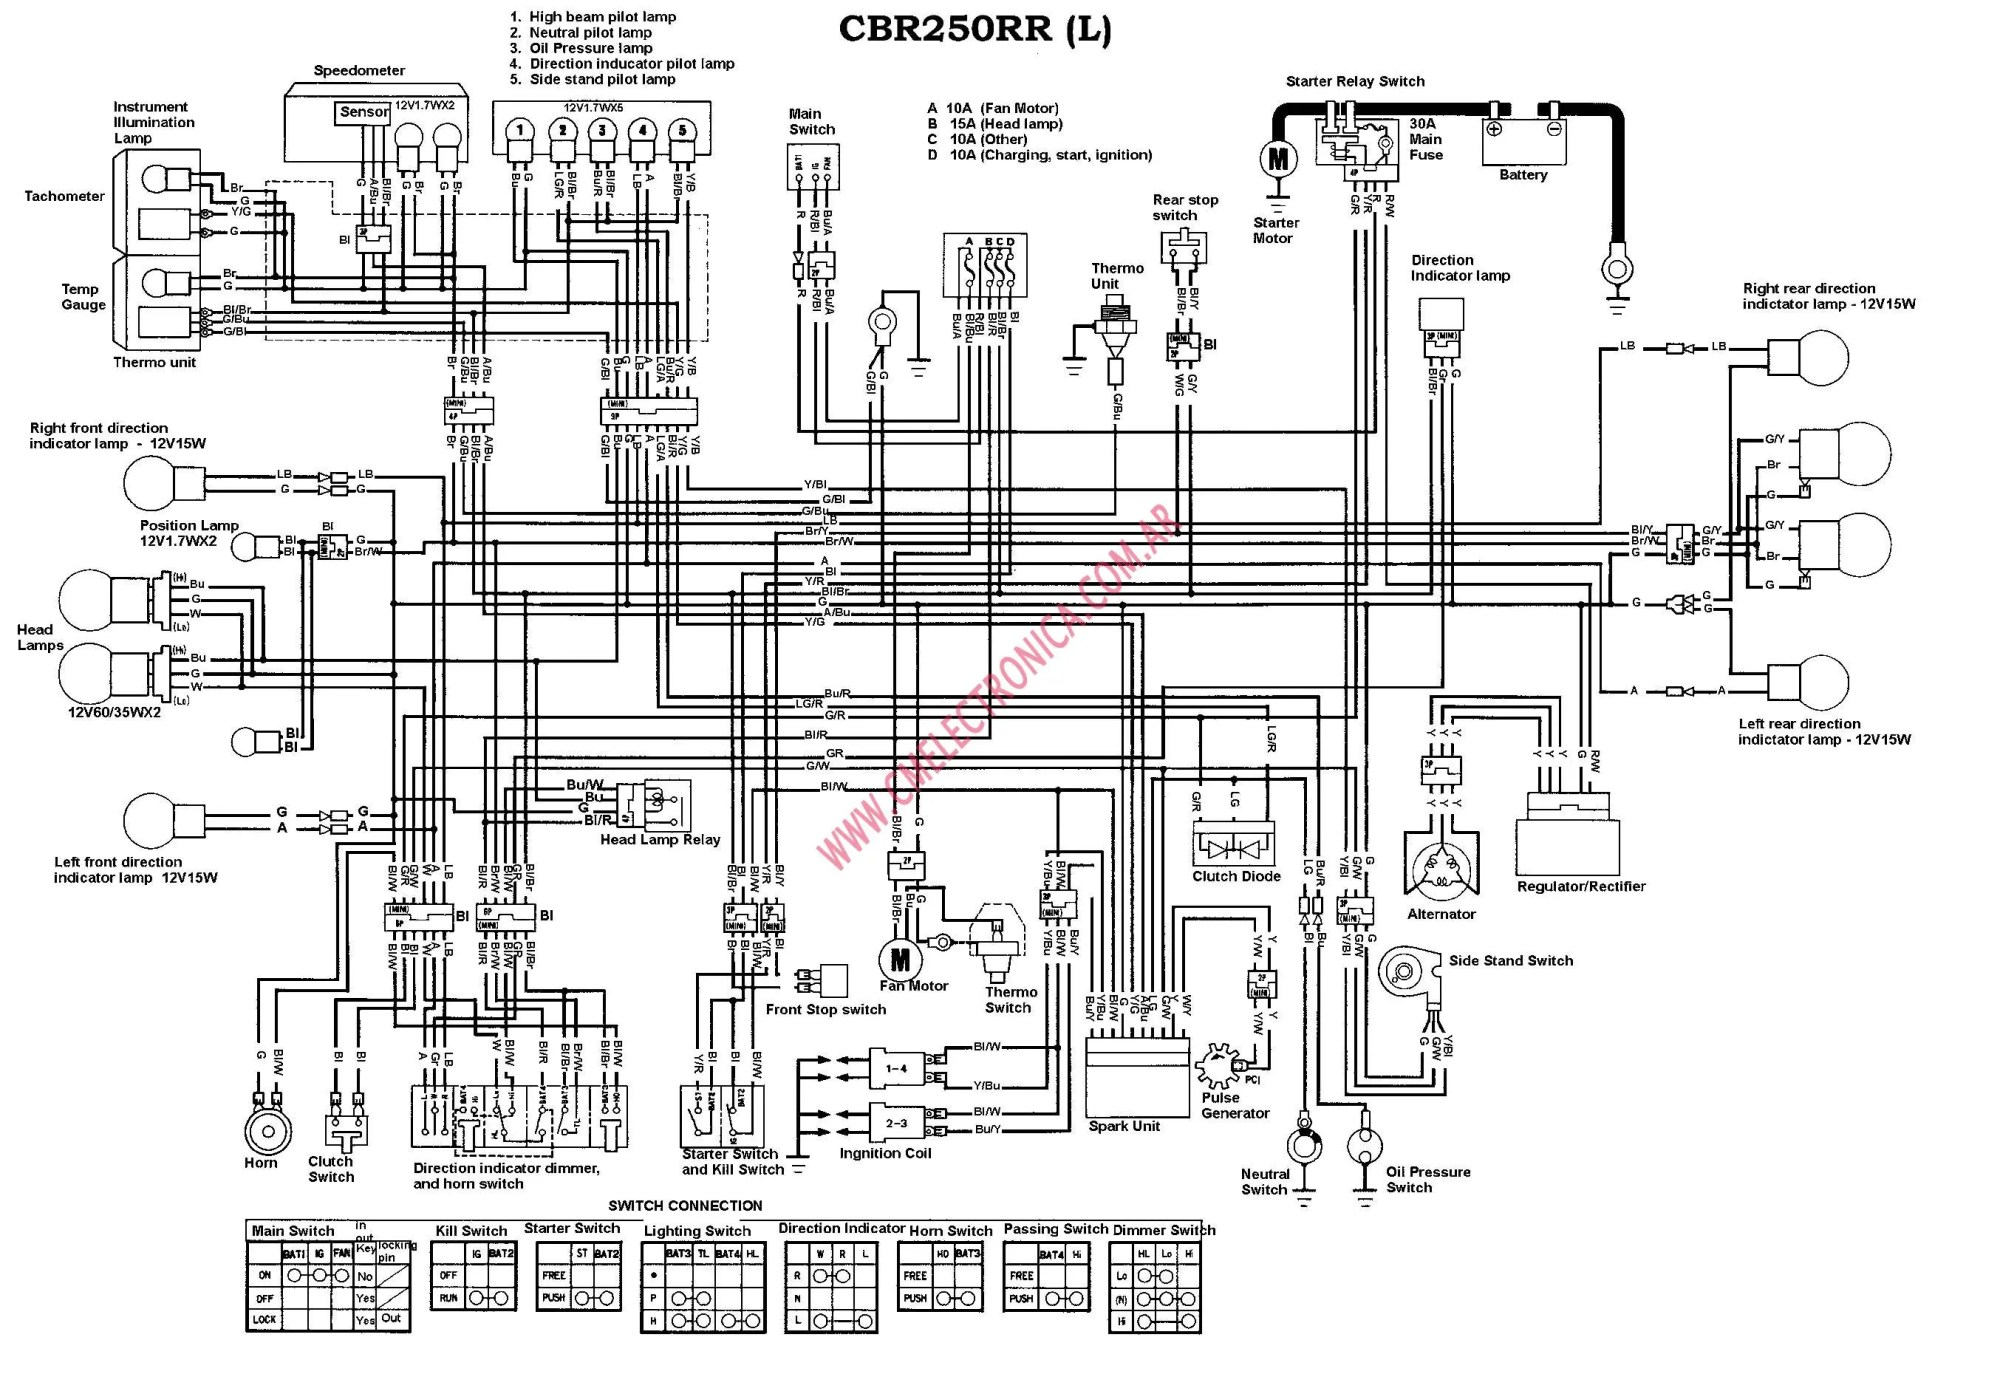 hight resolution of cbr 250 wiring diagram wiring diagram with description cbr250r abs wiring diagram 2013 honda cbr250r wiring